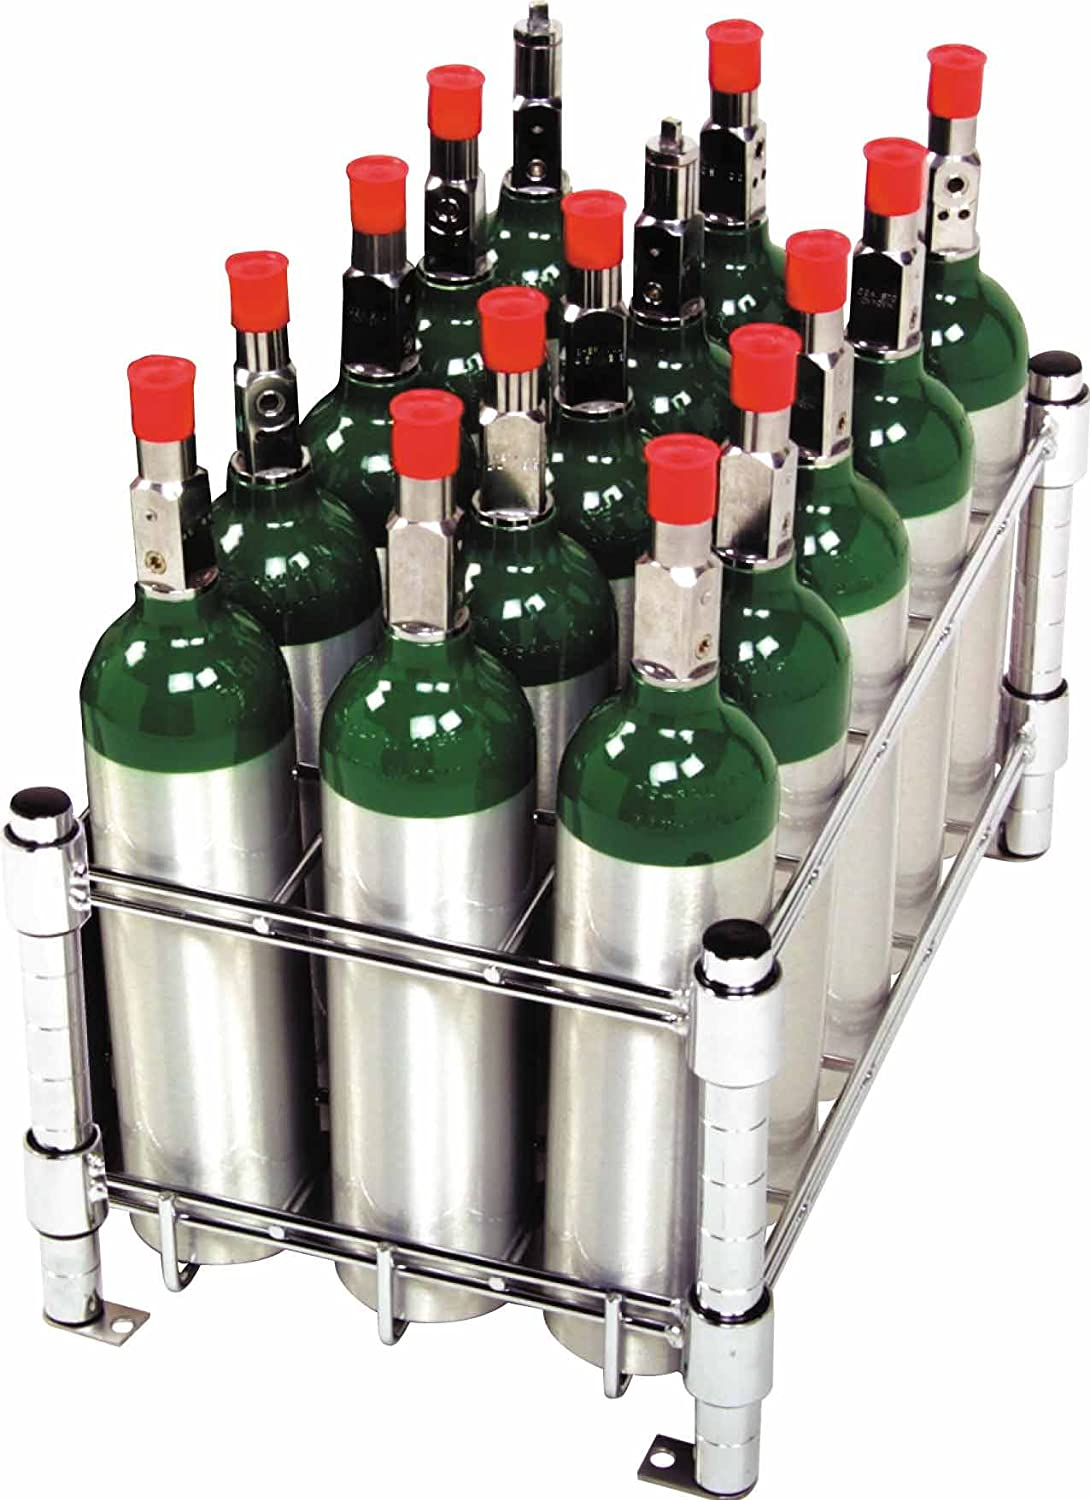 Amazon.com: M6 Oxygen Tank Cylinder Storage Rack   Holds 15 Tanks: Health U0026  Personal Care